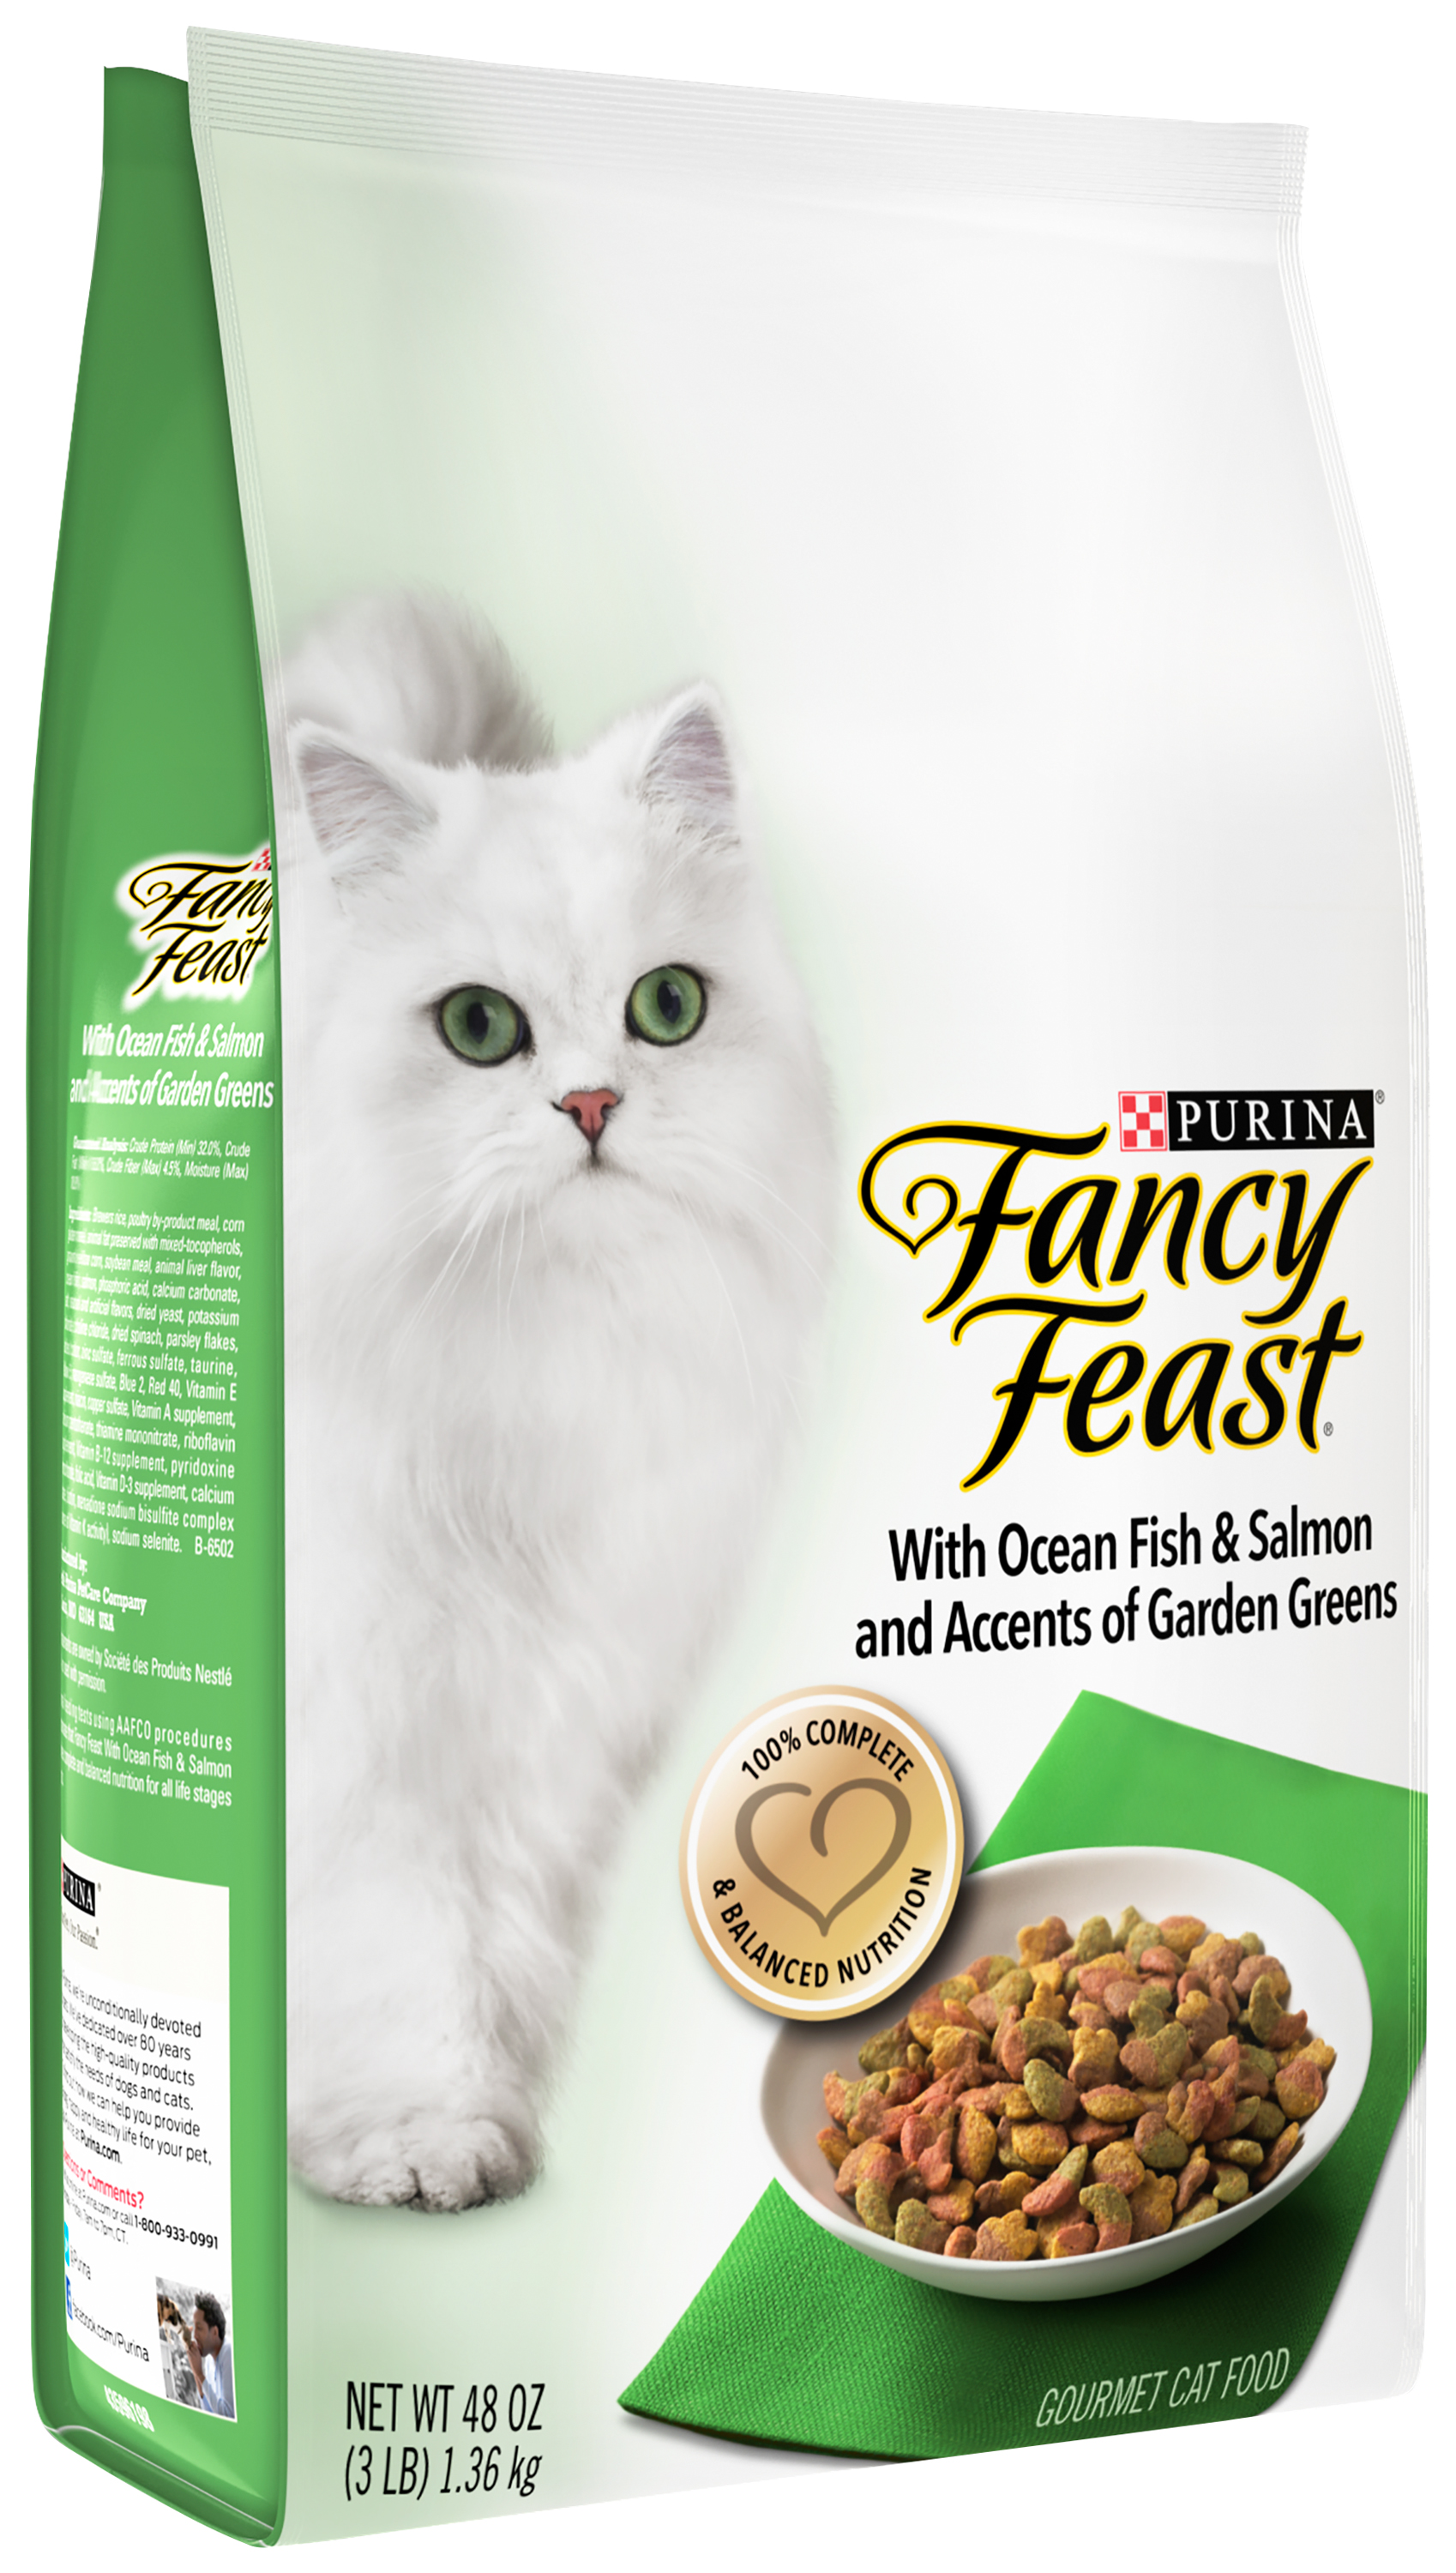 Purina Fancy Feast with Ocean Fish amp Salmon Cat Food 3 lb